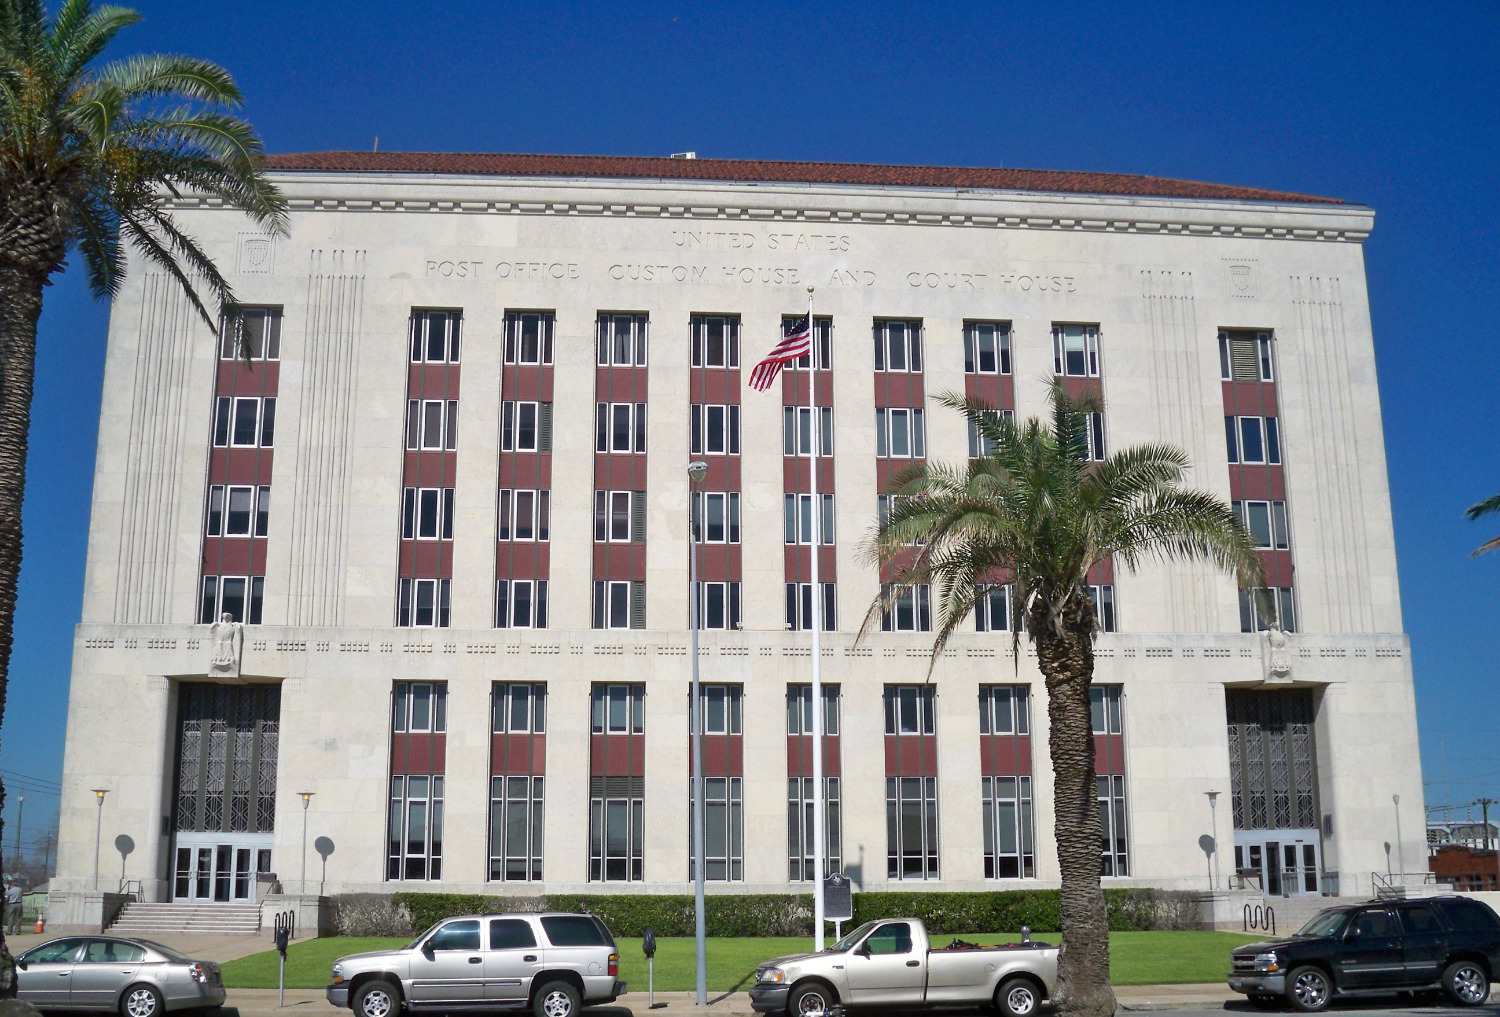 Galveston Courthouse & Post Office